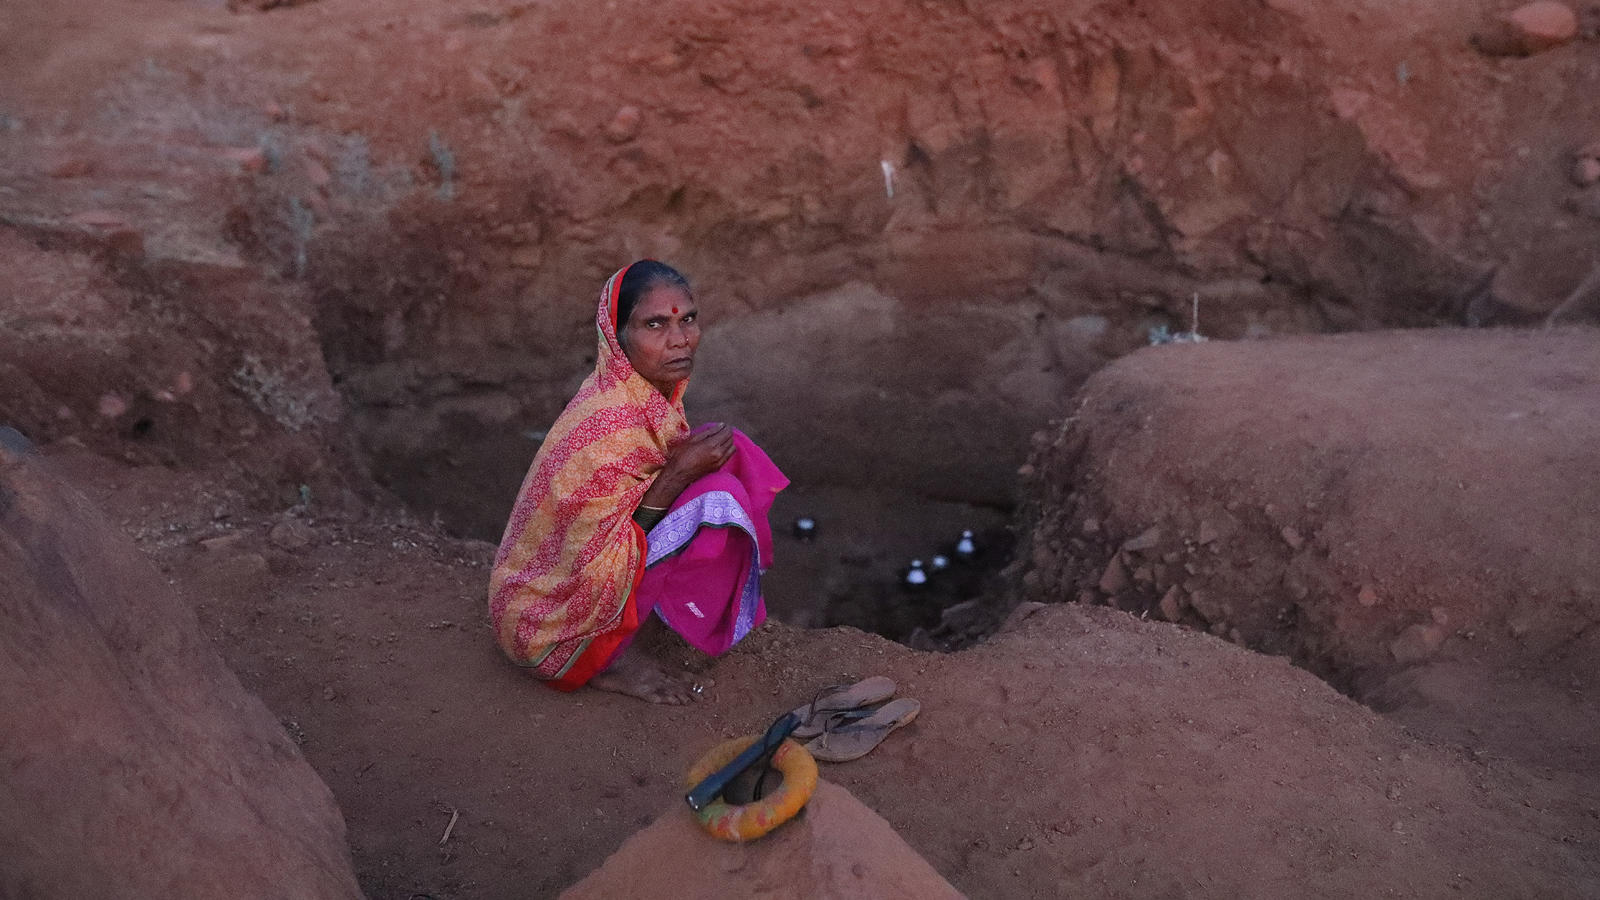 55-year-old Paribai Waghmare's days and nights revolve around the pursuit of water